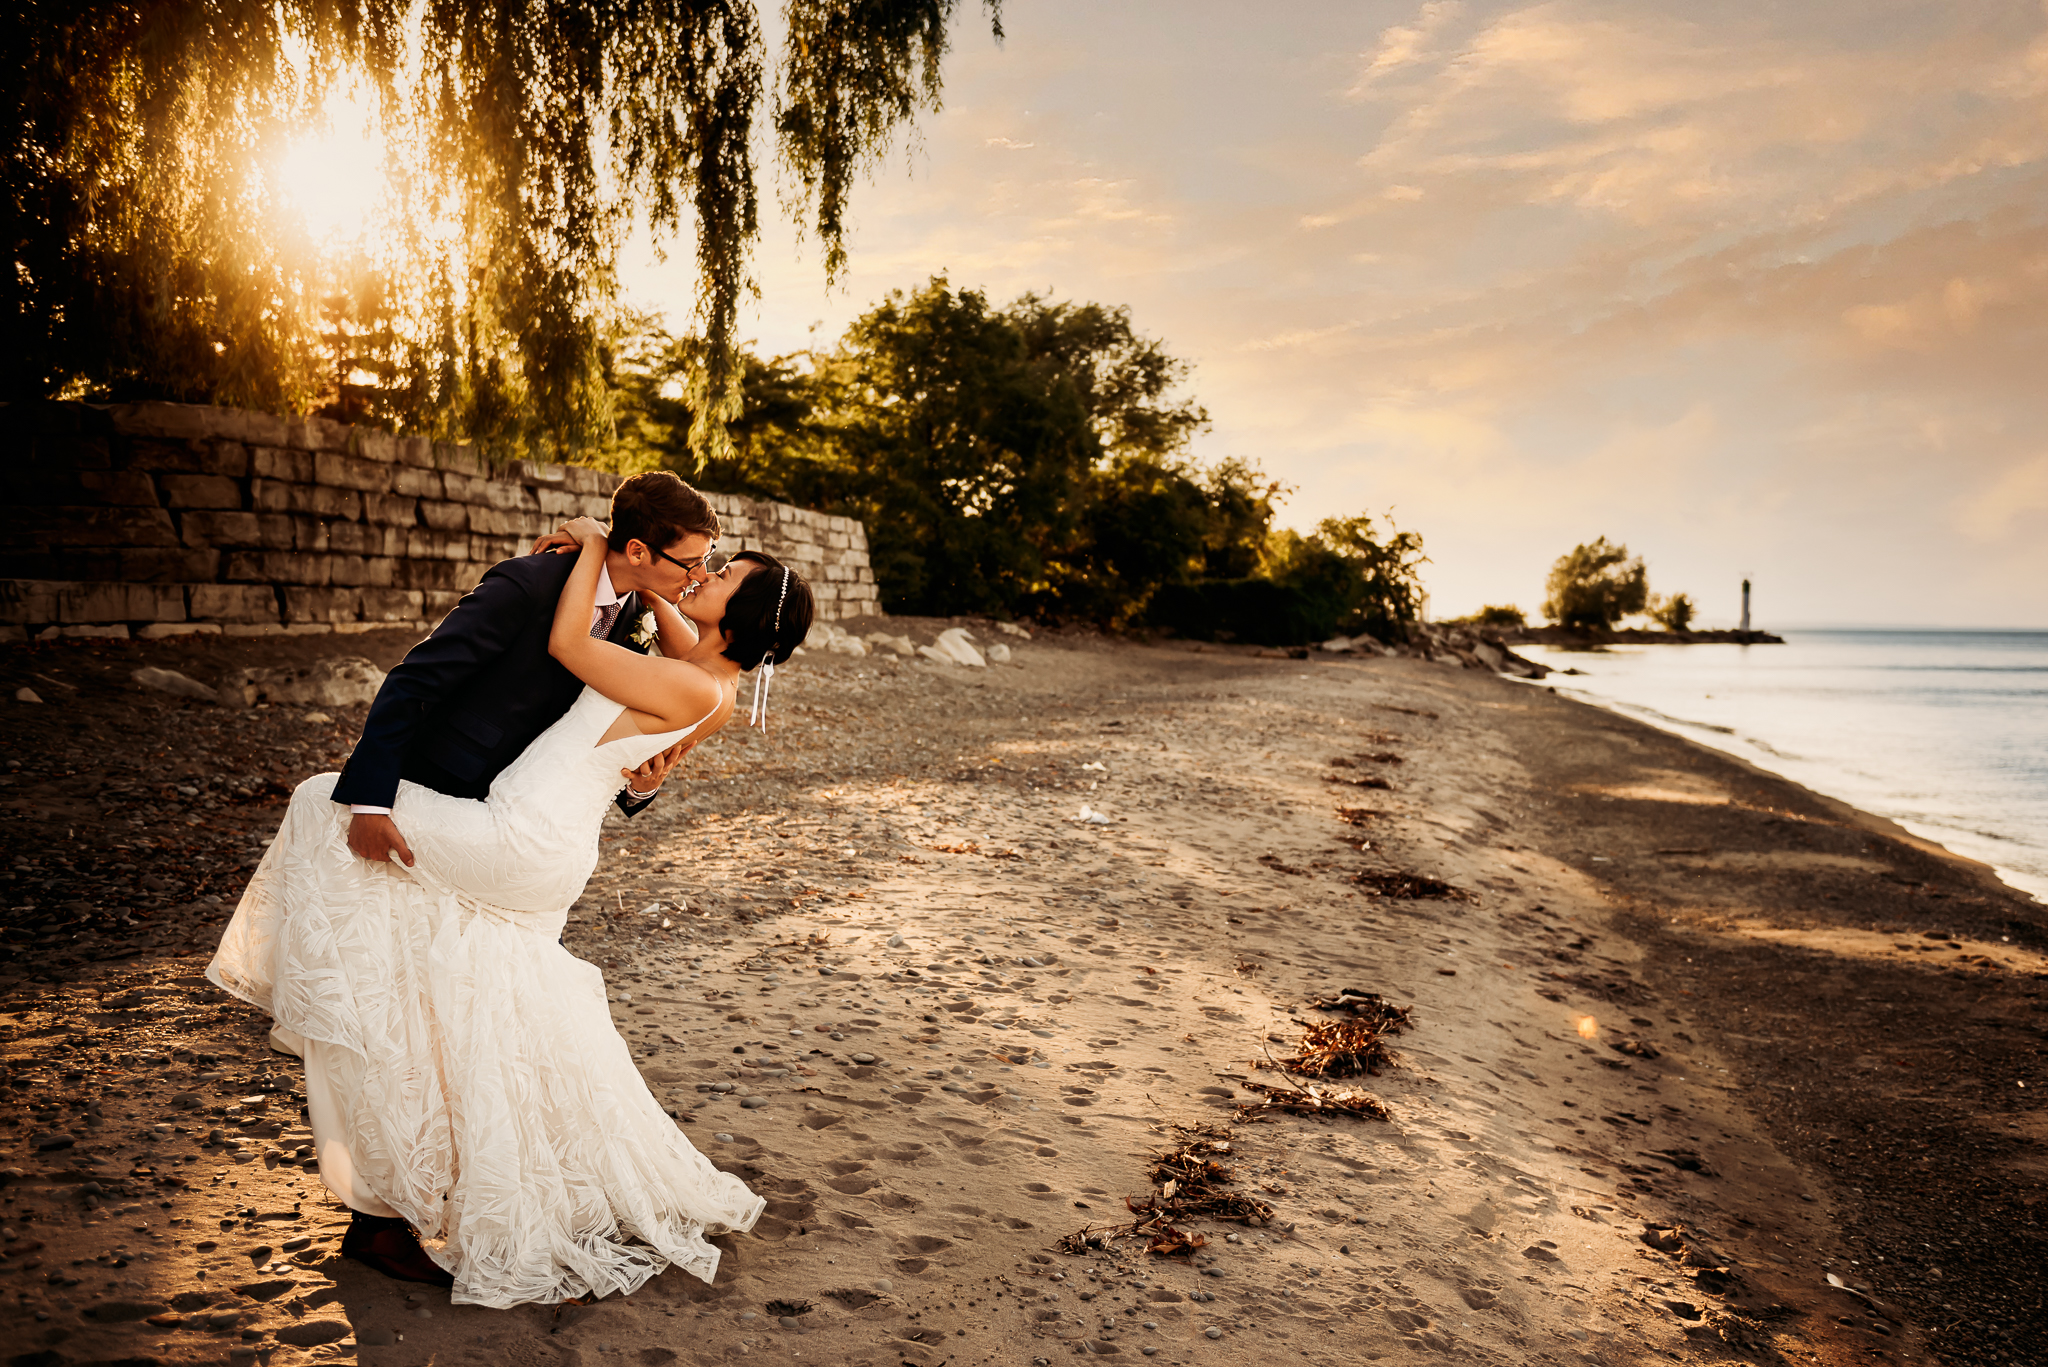 Catchlight Photography - Hamilton Weddin